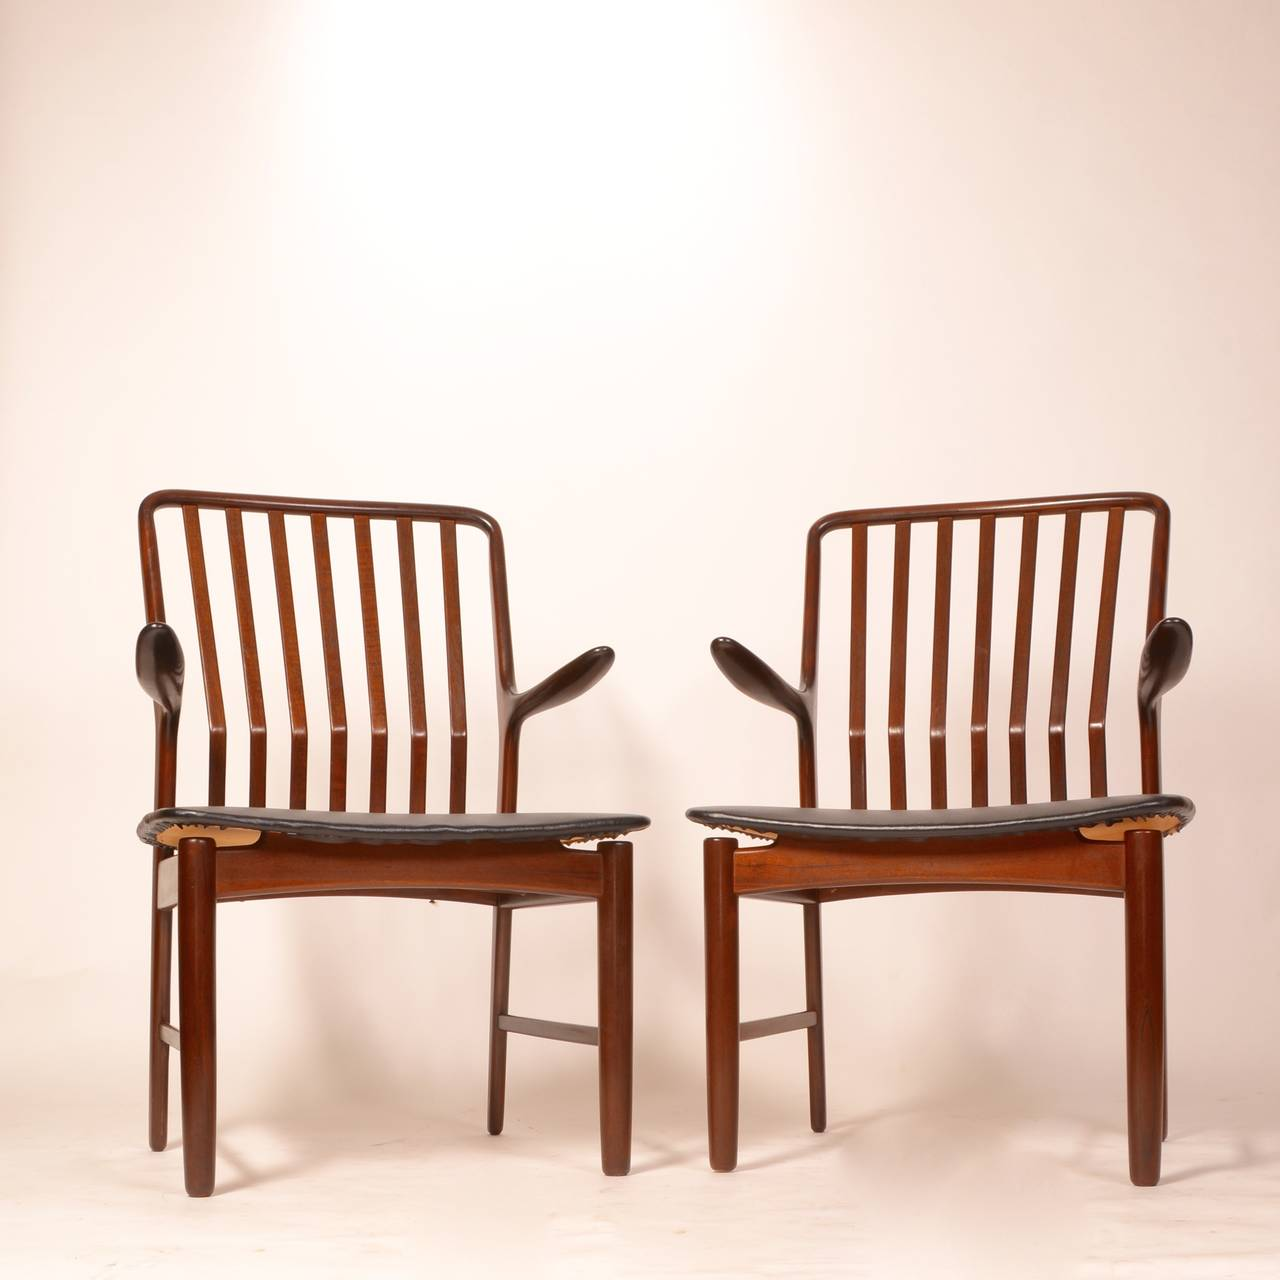 Beautiful Set Of 2 Danish Modern Dining Chairs Designed By Svend A. Madsen,  Imported